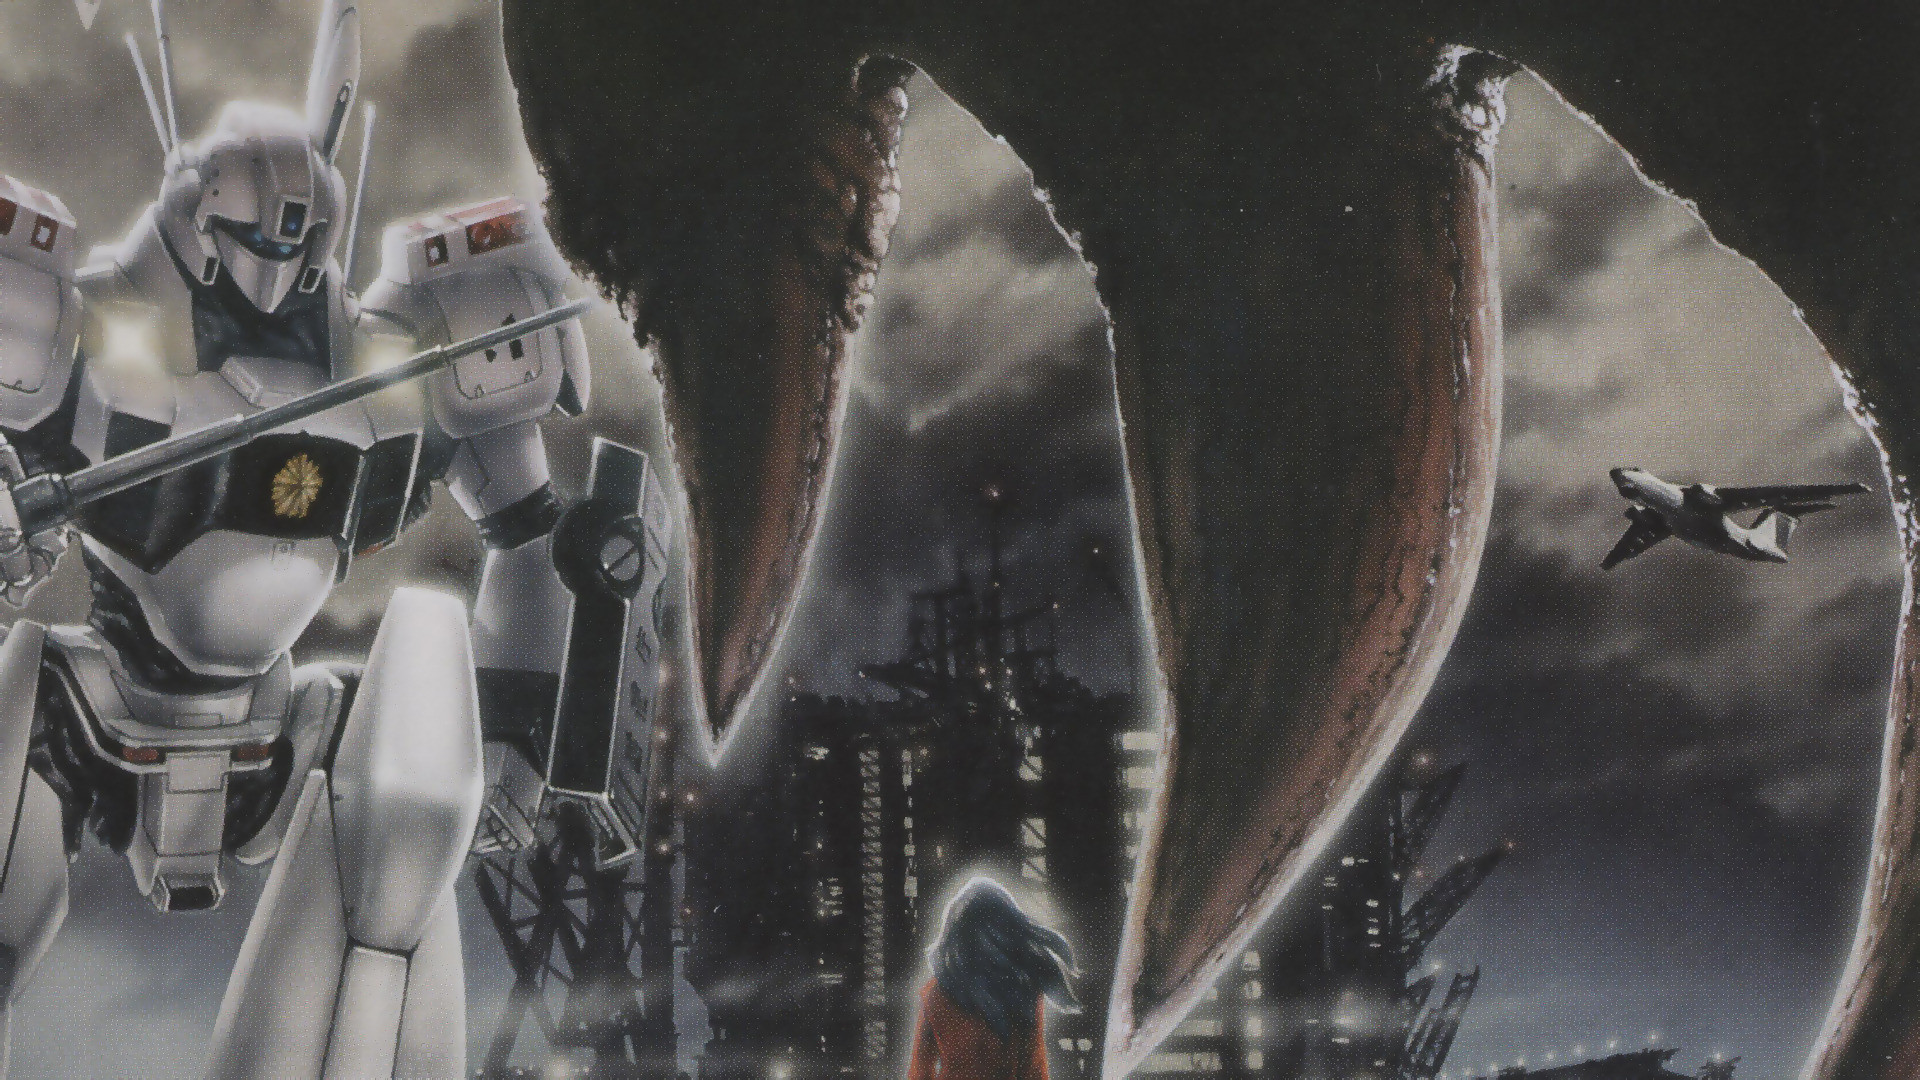 Patlabor Robot Image Picture Anime HD Wallpapers Desktop Widescreen